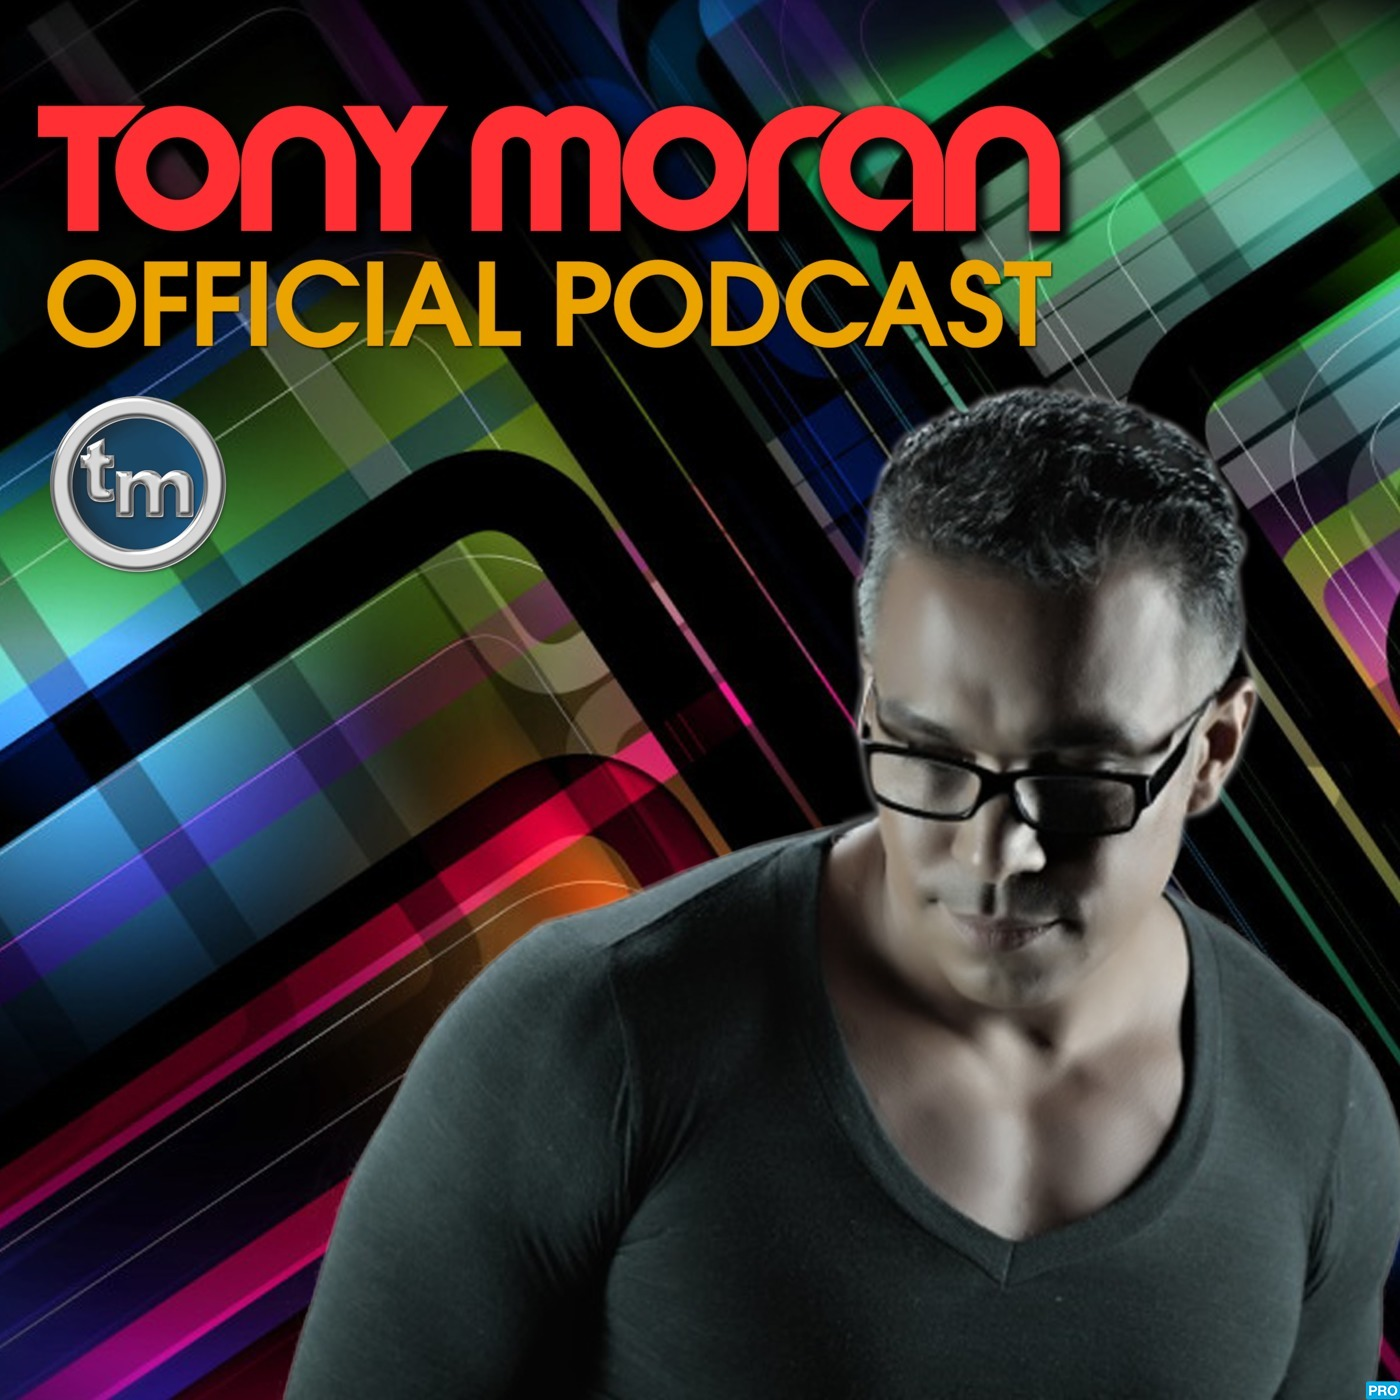 Tony Moran - Official Podcast